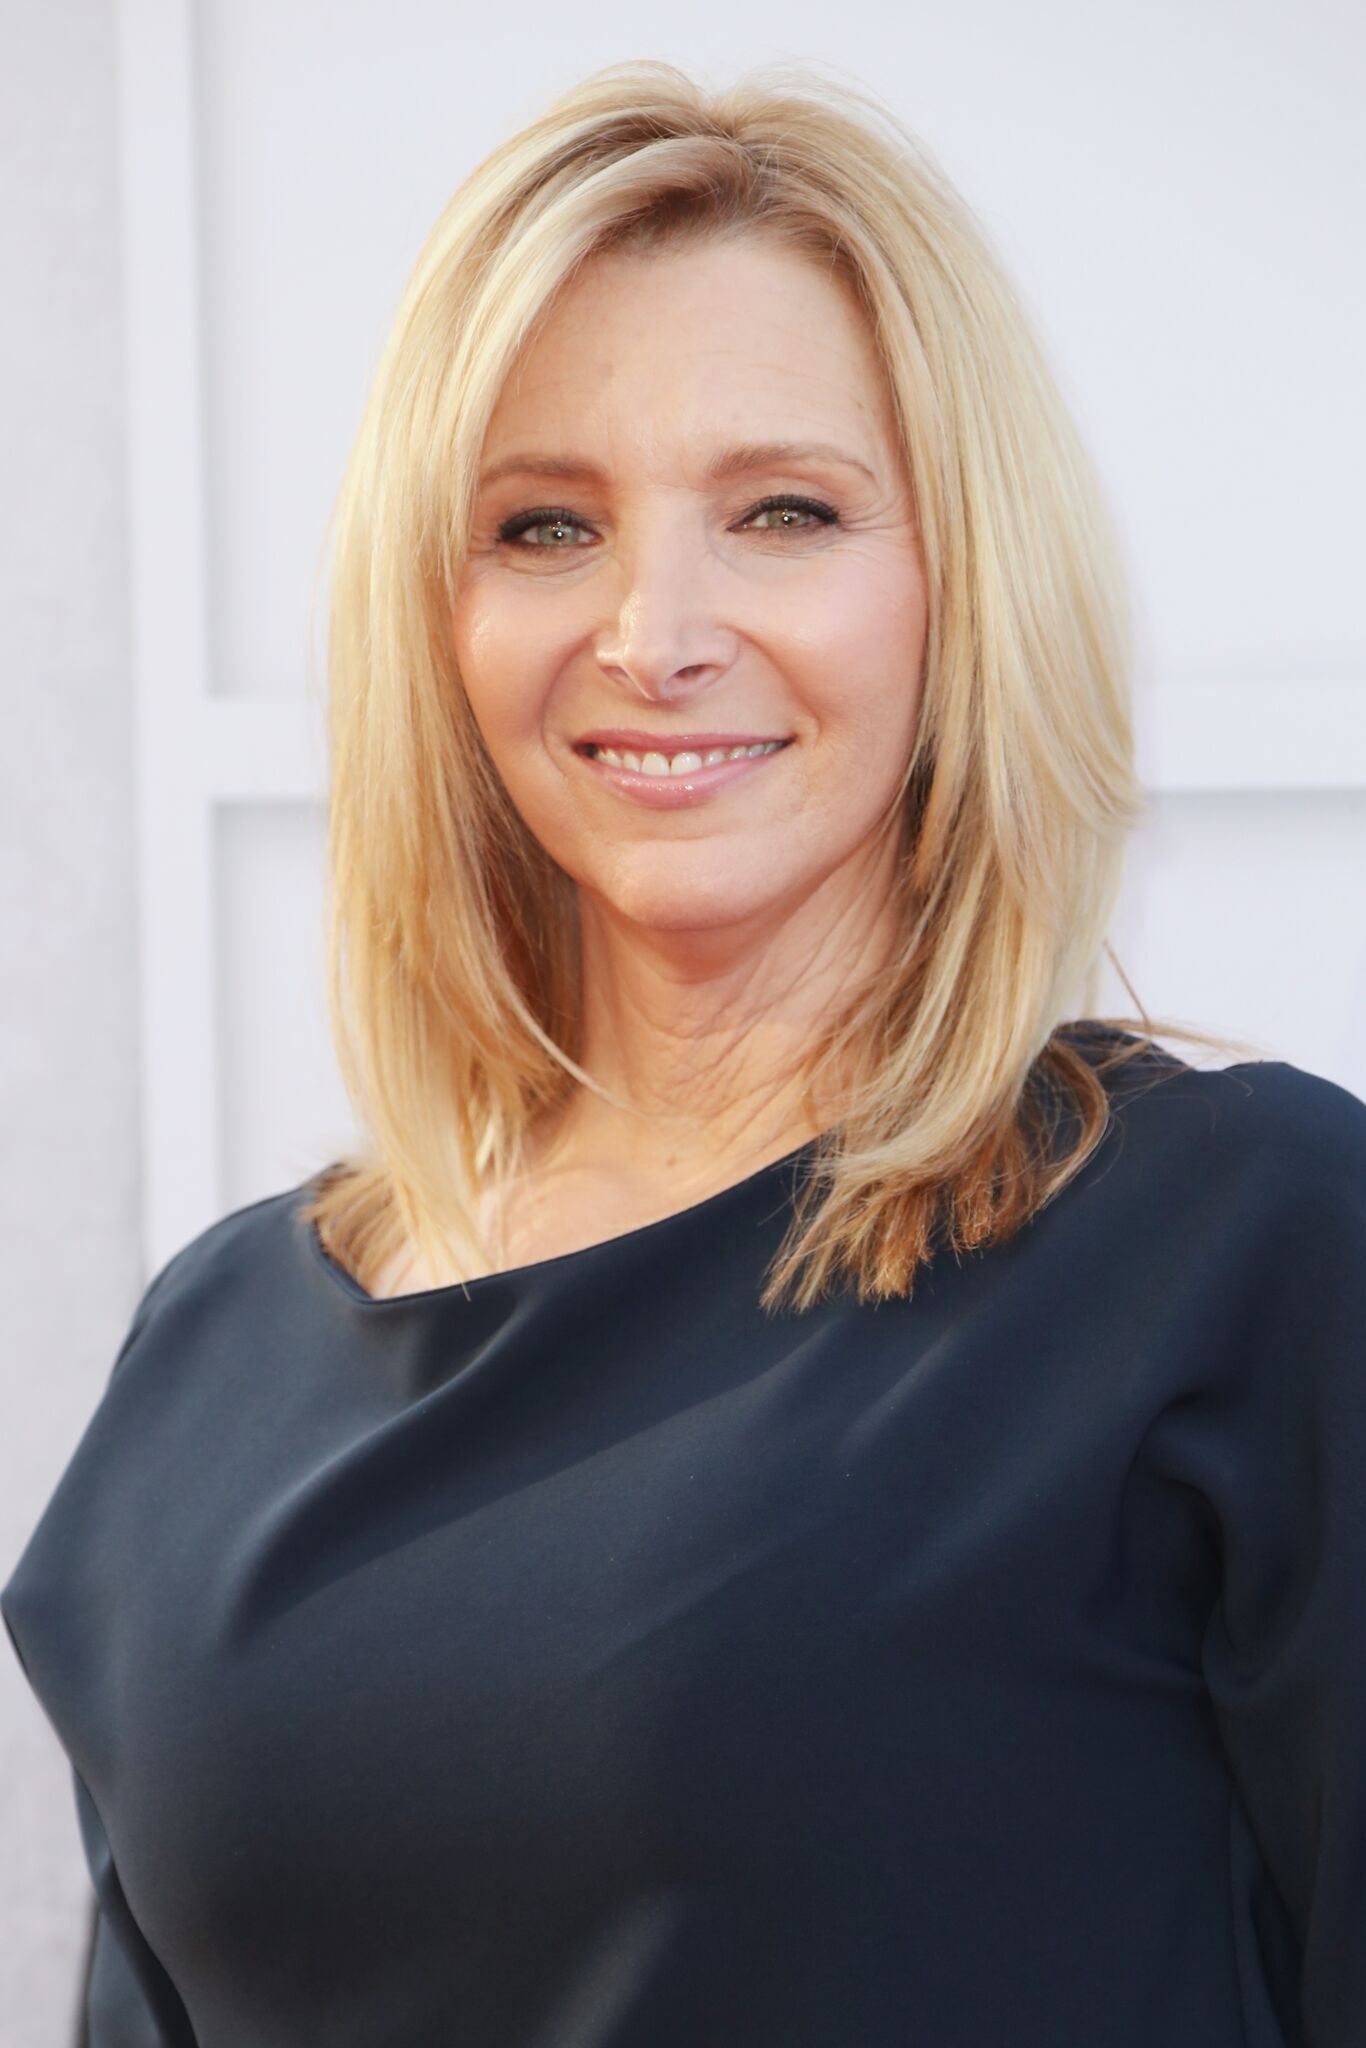 Lisa Kudrow arrives at American Film Institute's 45th Life Achievement Award Gala Tribute to Diane Keaton at Dolby Theatre | Getty Images